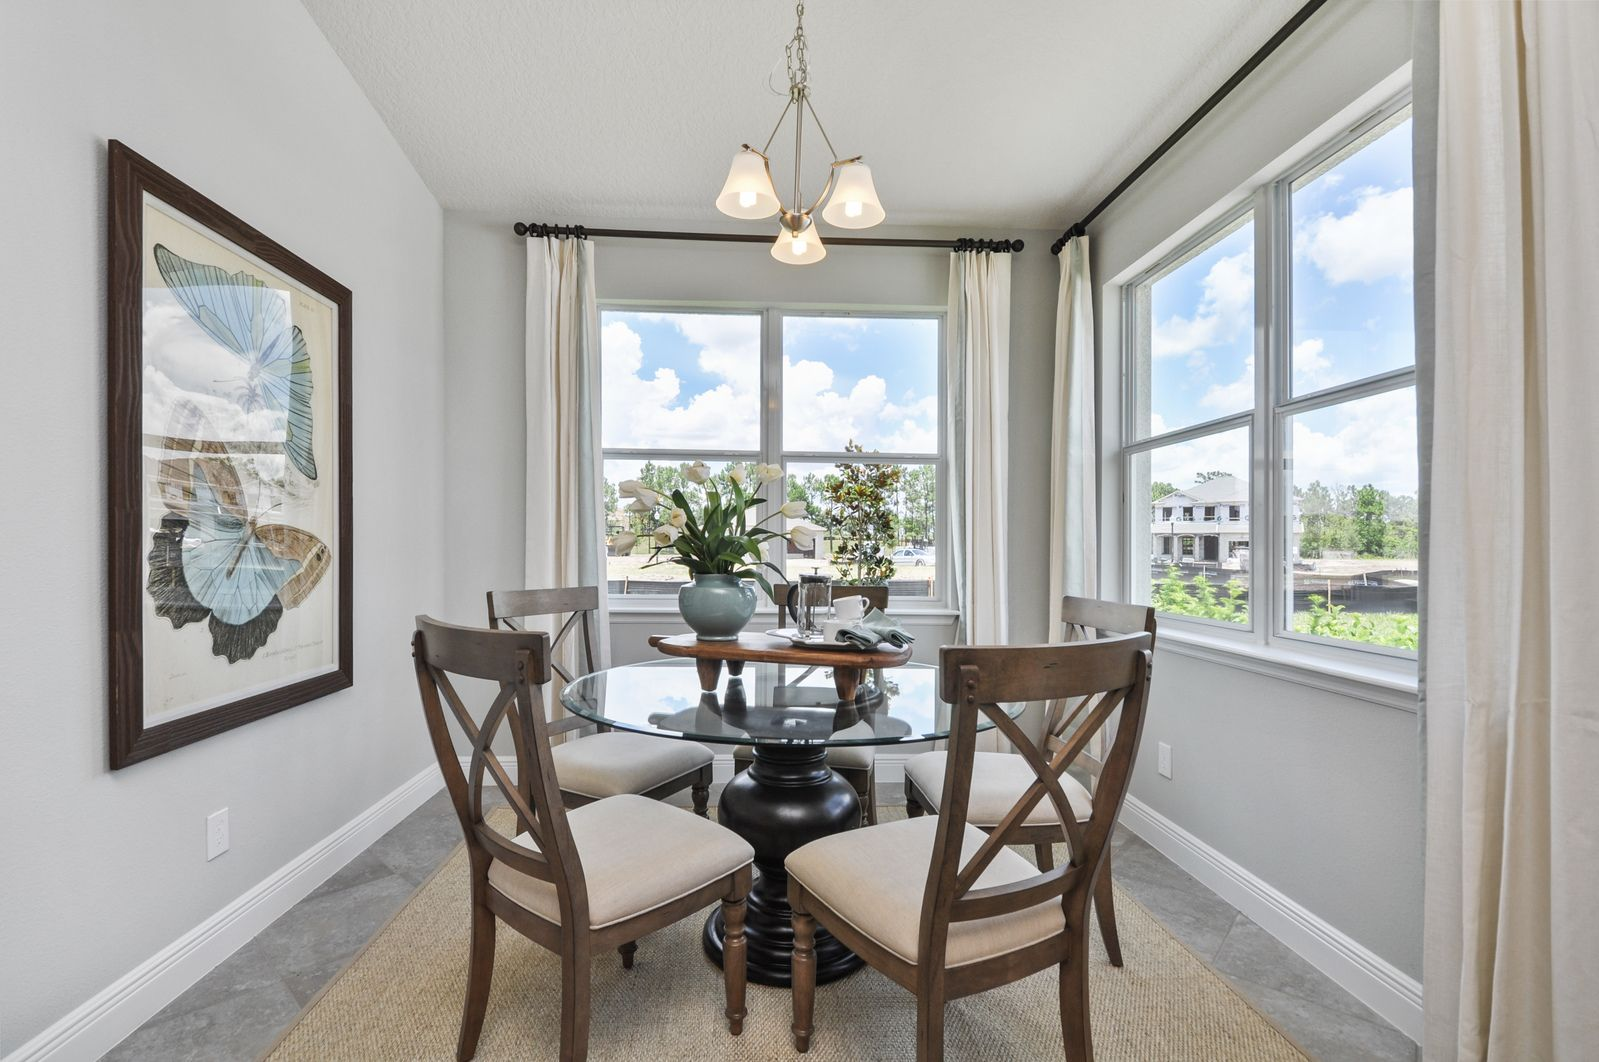 Breakfast-Room-in-Biscayne Bay-at-Forest Lake Estates-in-Ocoee